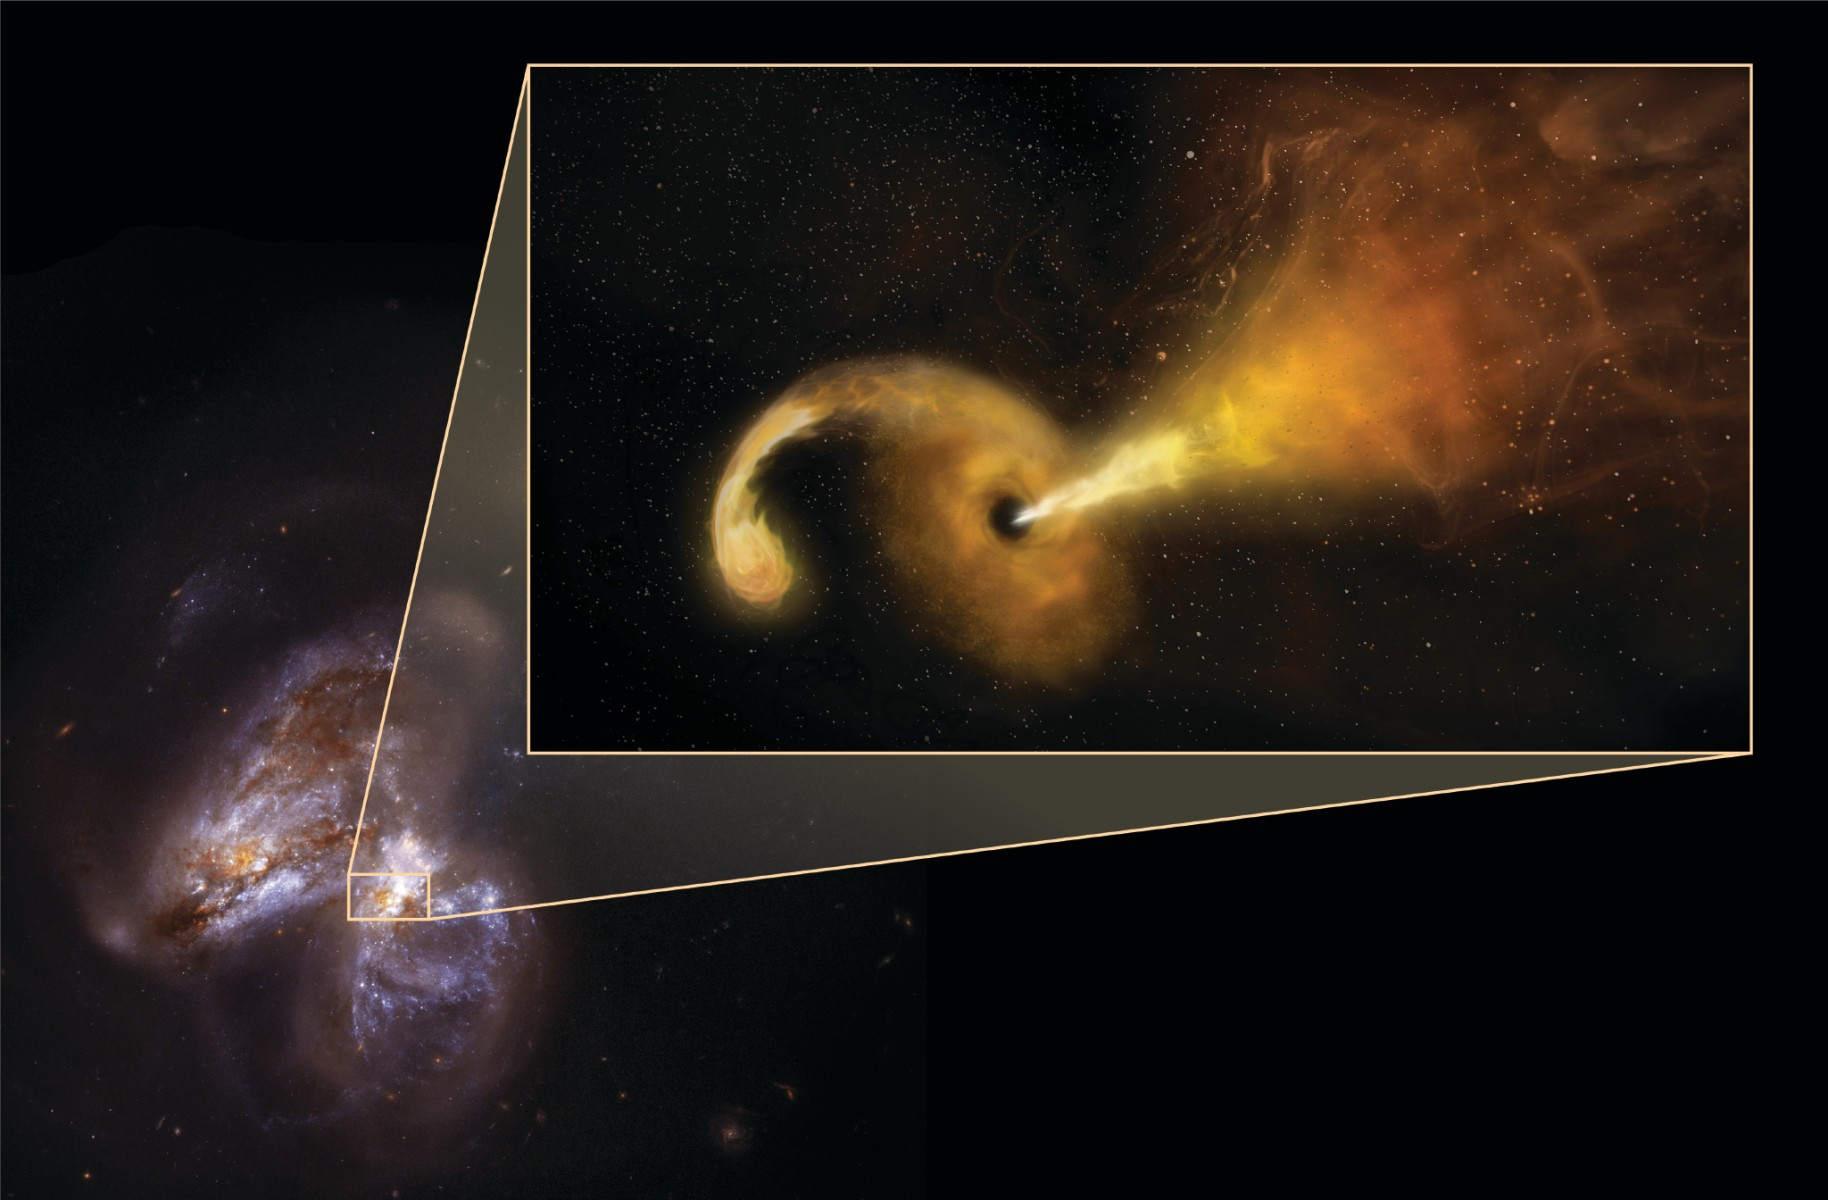 Goodbye, star. Astronomers first detected the star consumed a supermassive black hole